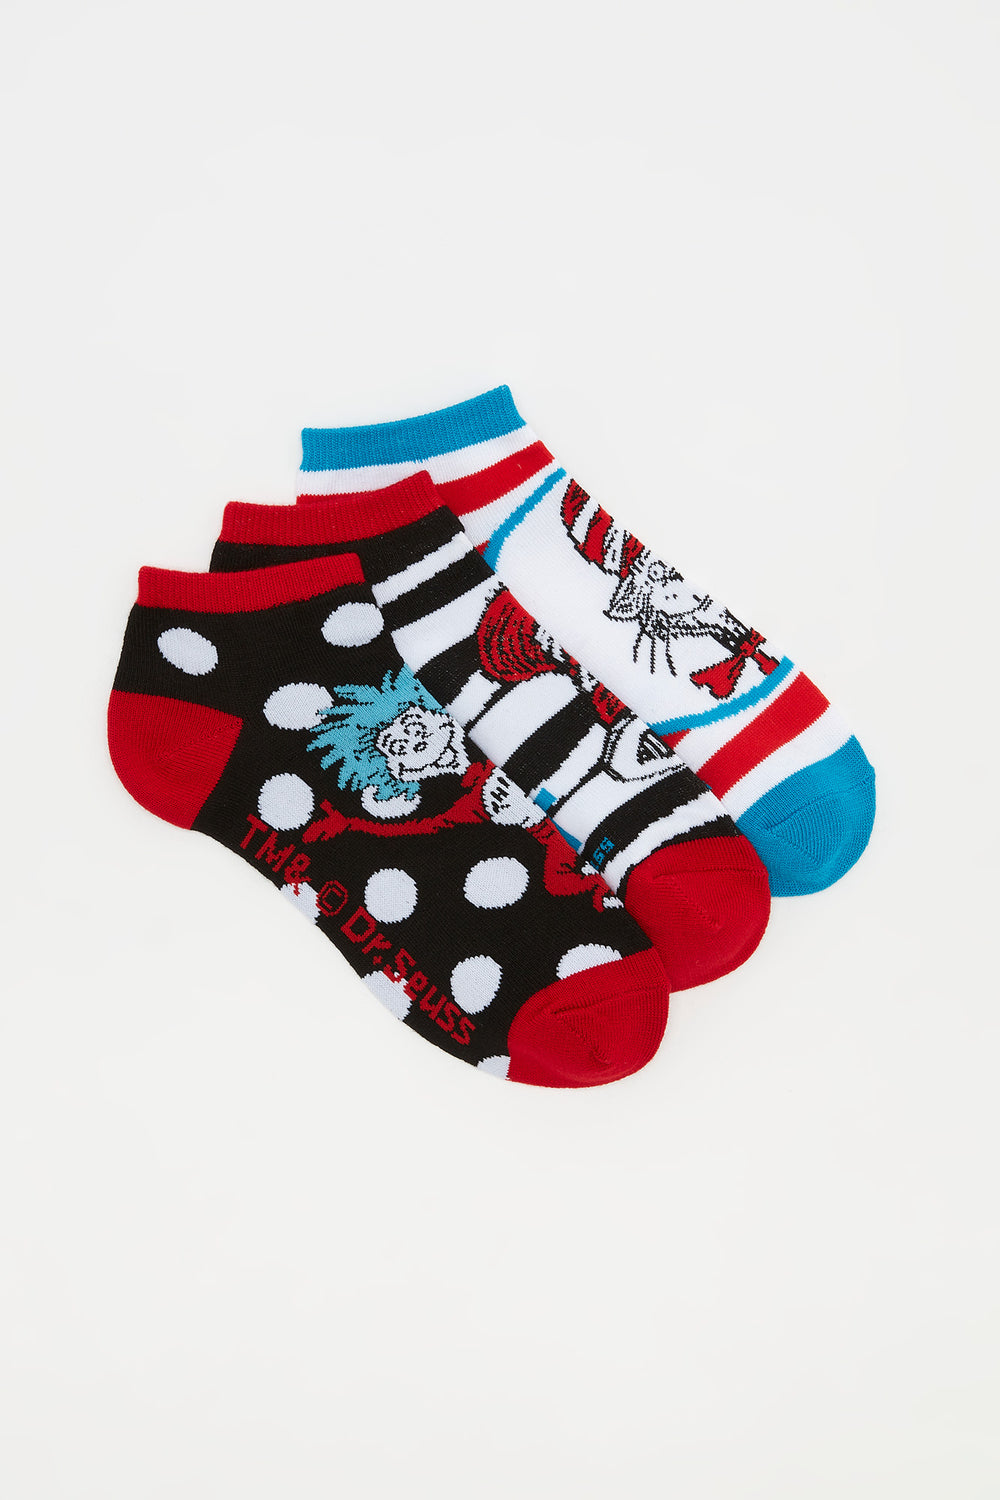 Chaussettes Cat In The Hat (3 paires) Varie